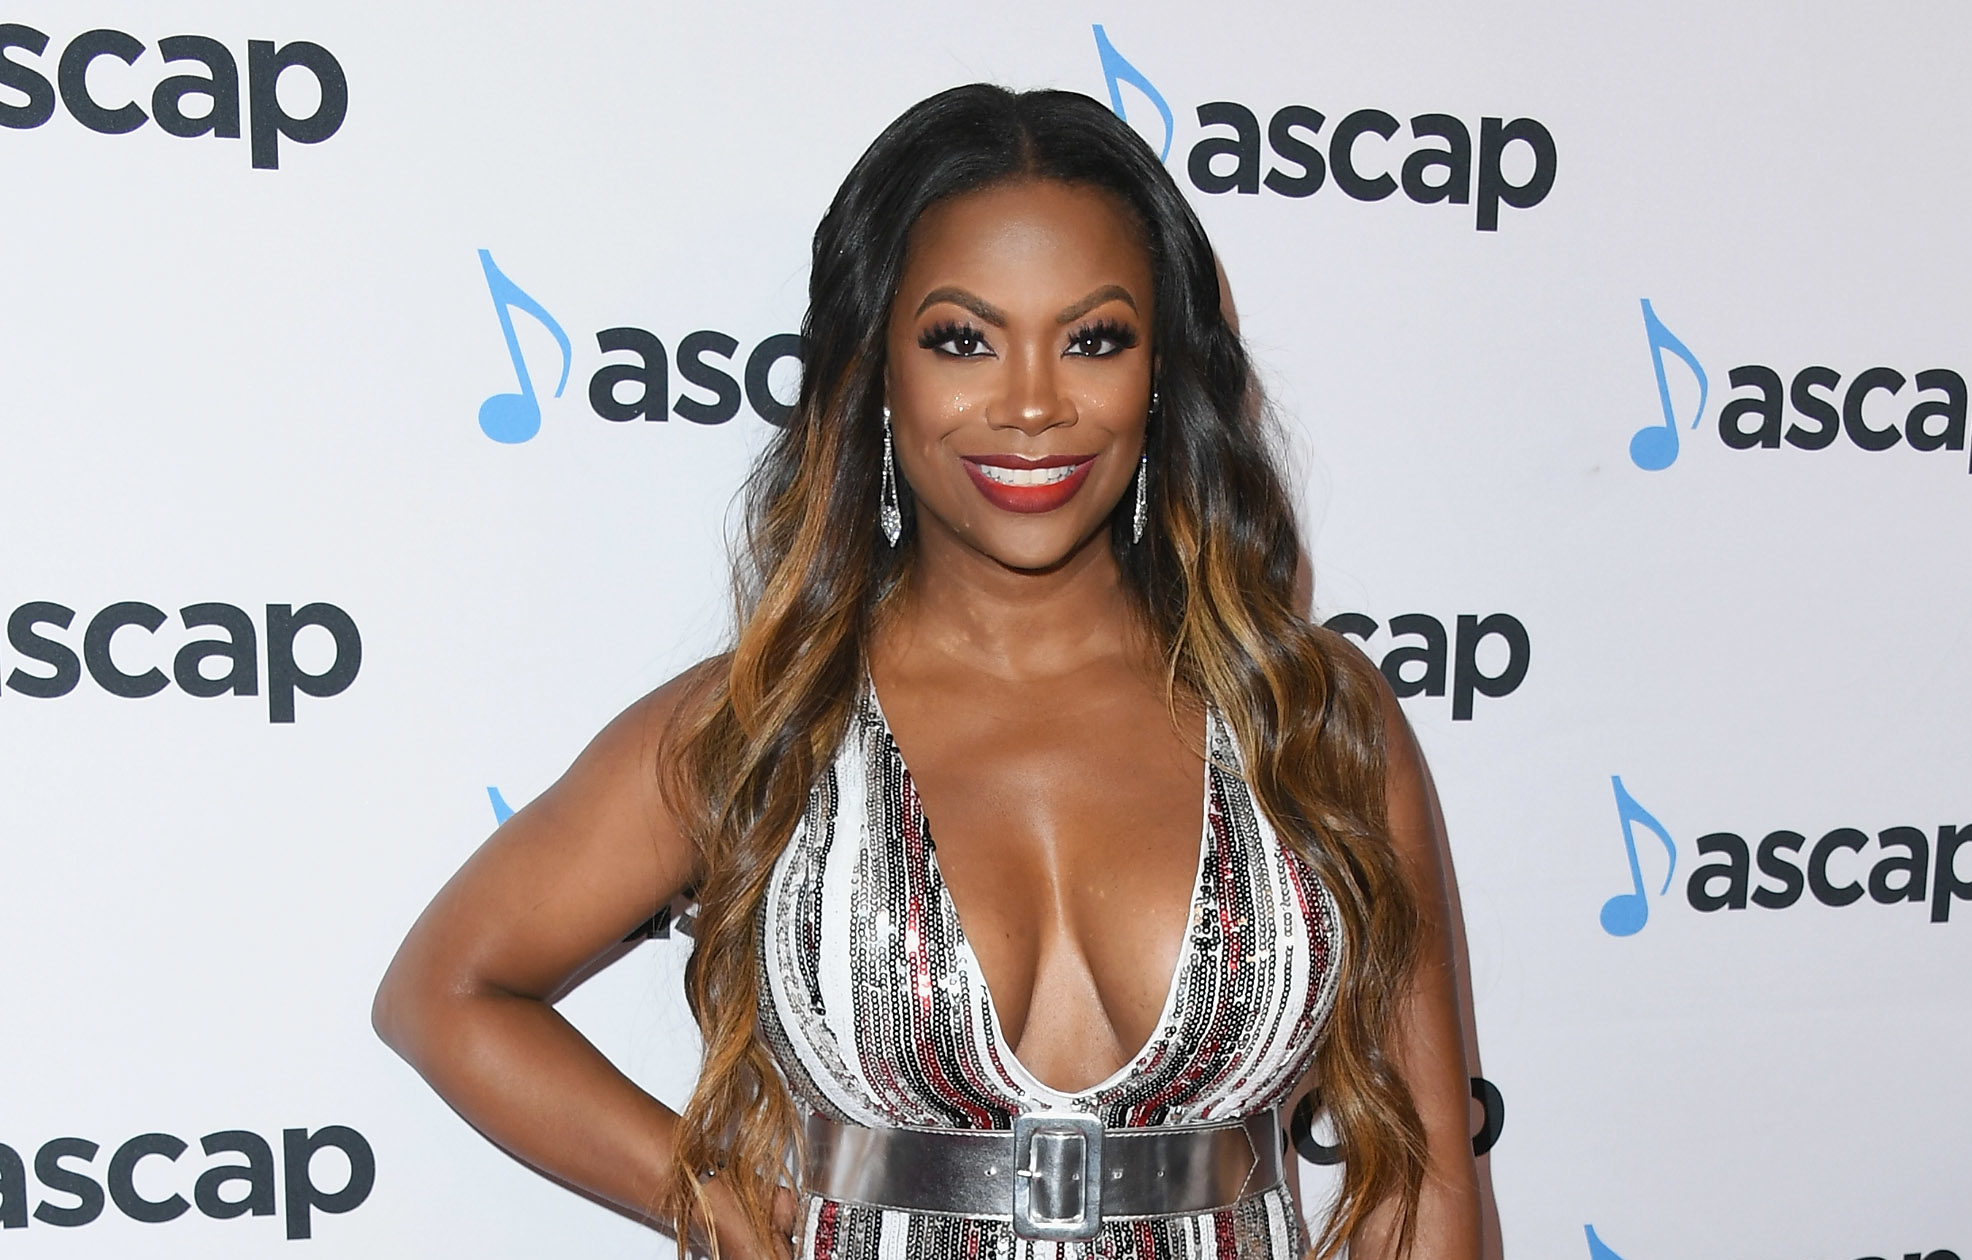 Kandi Burruss Is Mistress Angel In This Clip And Fans Are Here For It